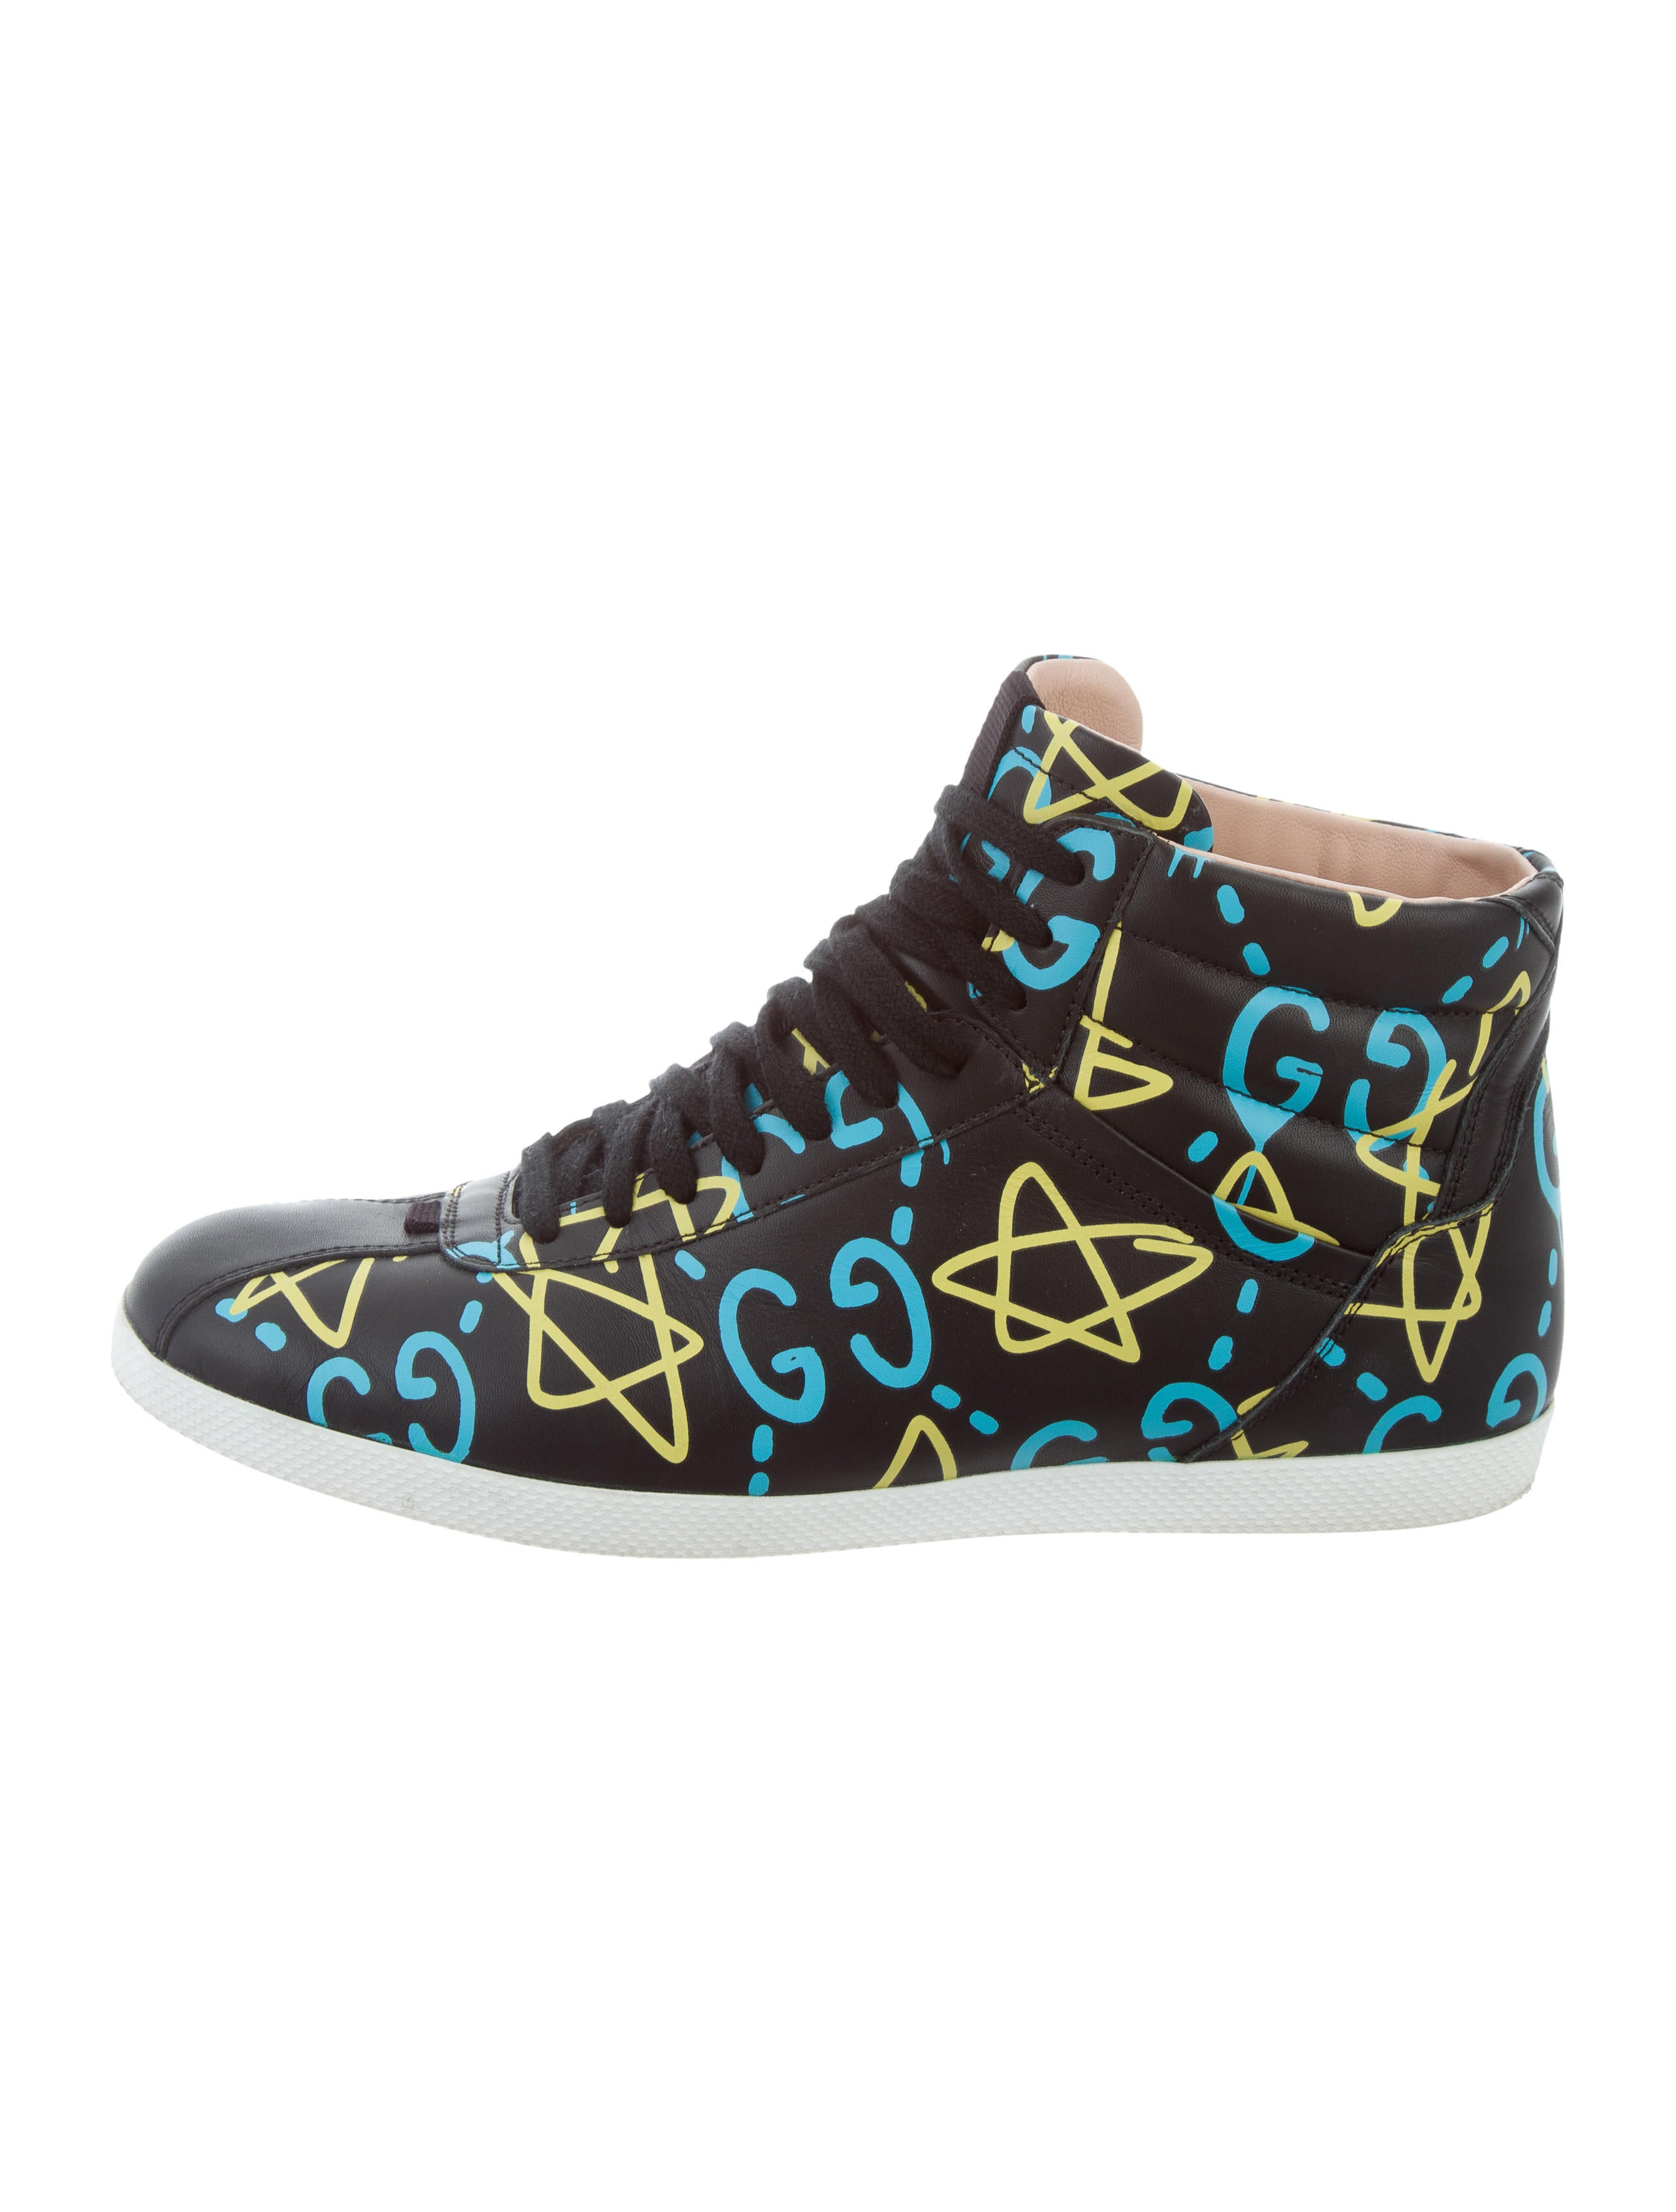 2ed7db3d71c Gucci Leather Gucci Ghost Sneakers - Shoes - GUC165009